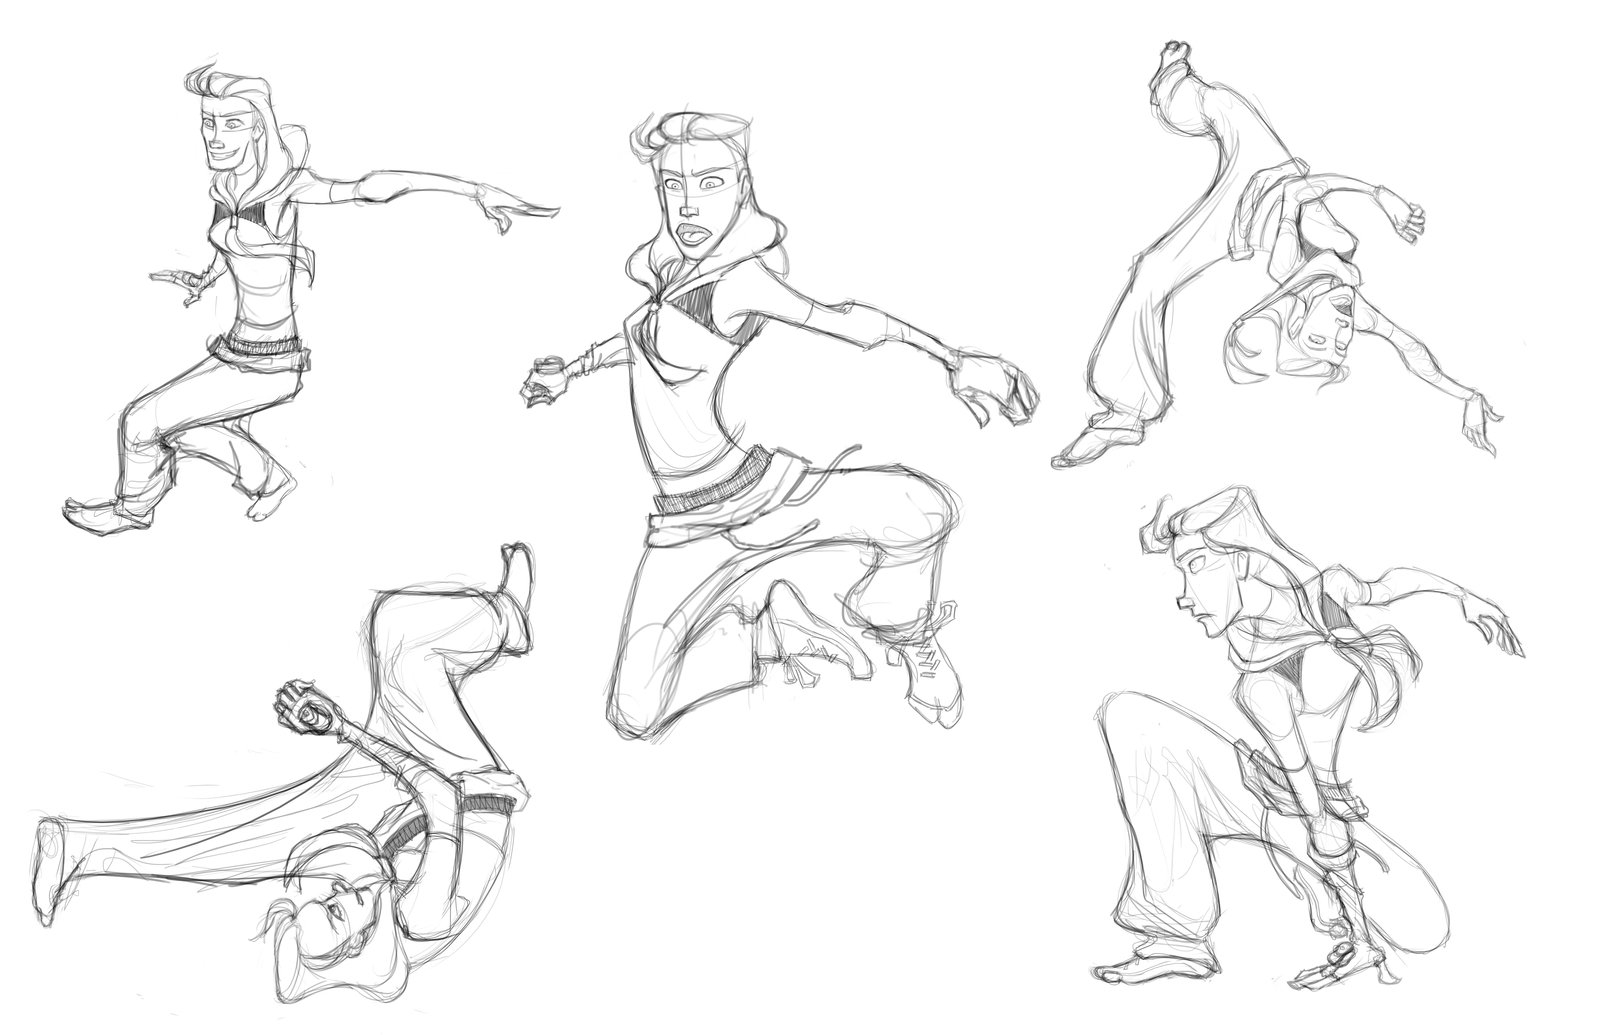 Vel's parkour gestures, to suggest her intensity, stealth, and skill.